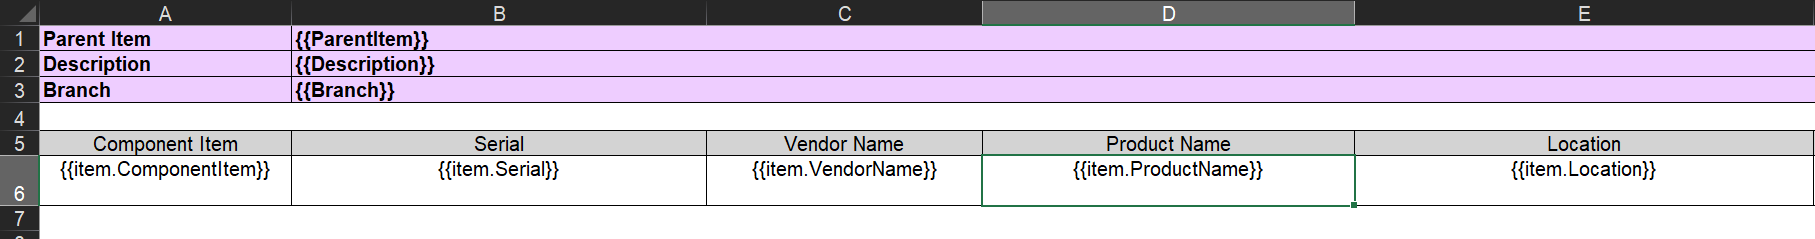 Manipulate excel data (Import / Export) using  Net Core